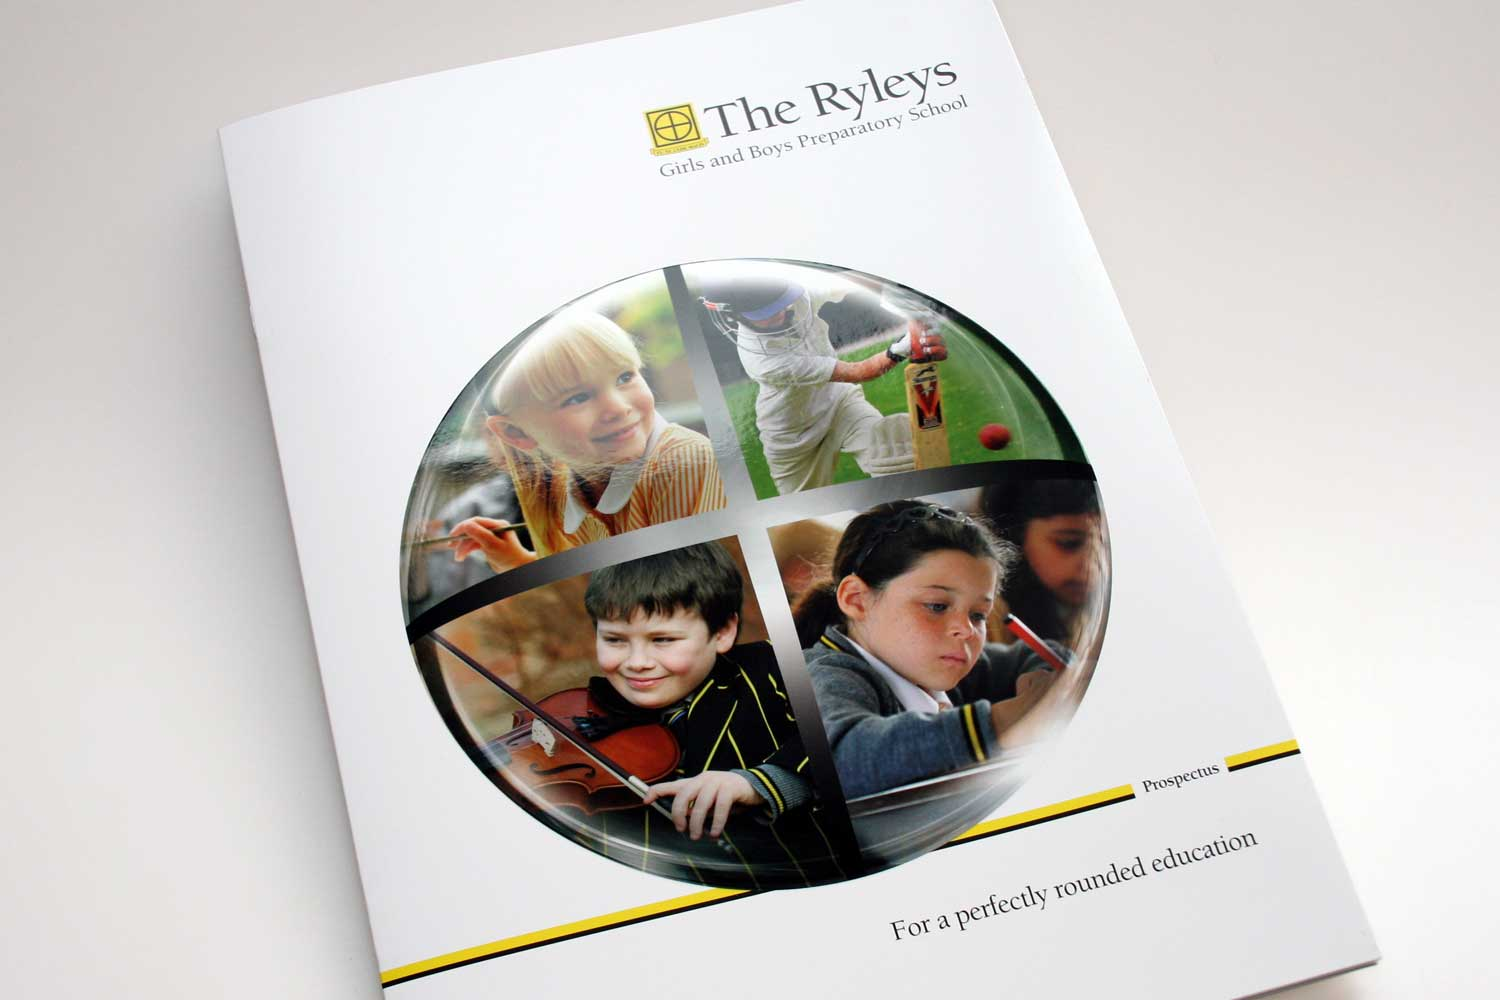 They Ryleys Preparatory School Prospectus - with embossing and spot UV coating on sphere